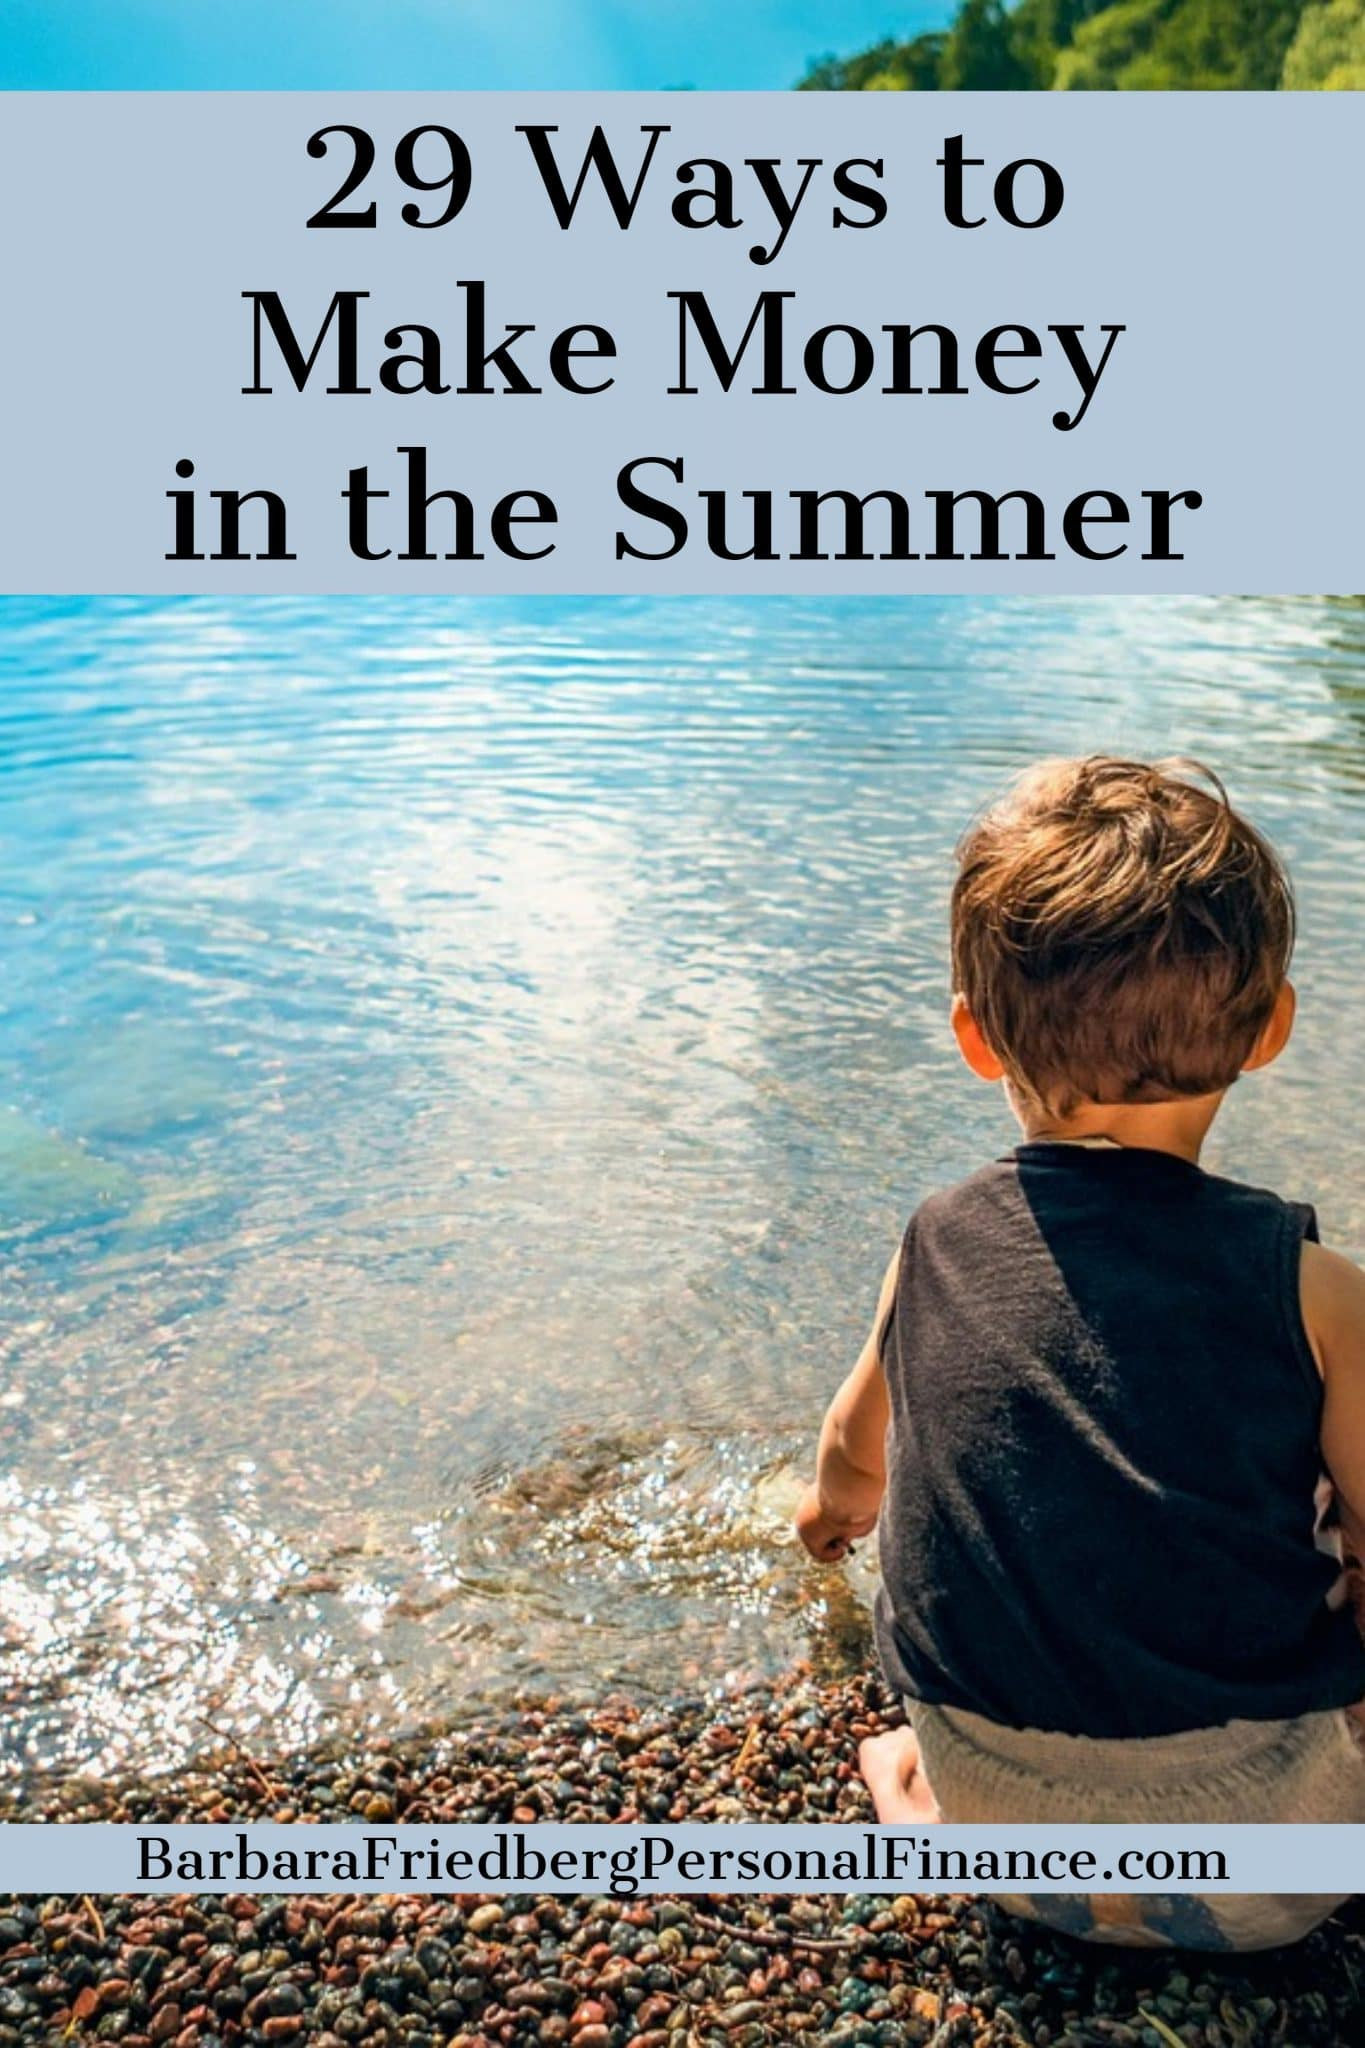 29 Fun Ways to Make #Money in the Summer-Work for yourself or someone else with these fun summer #jobs.